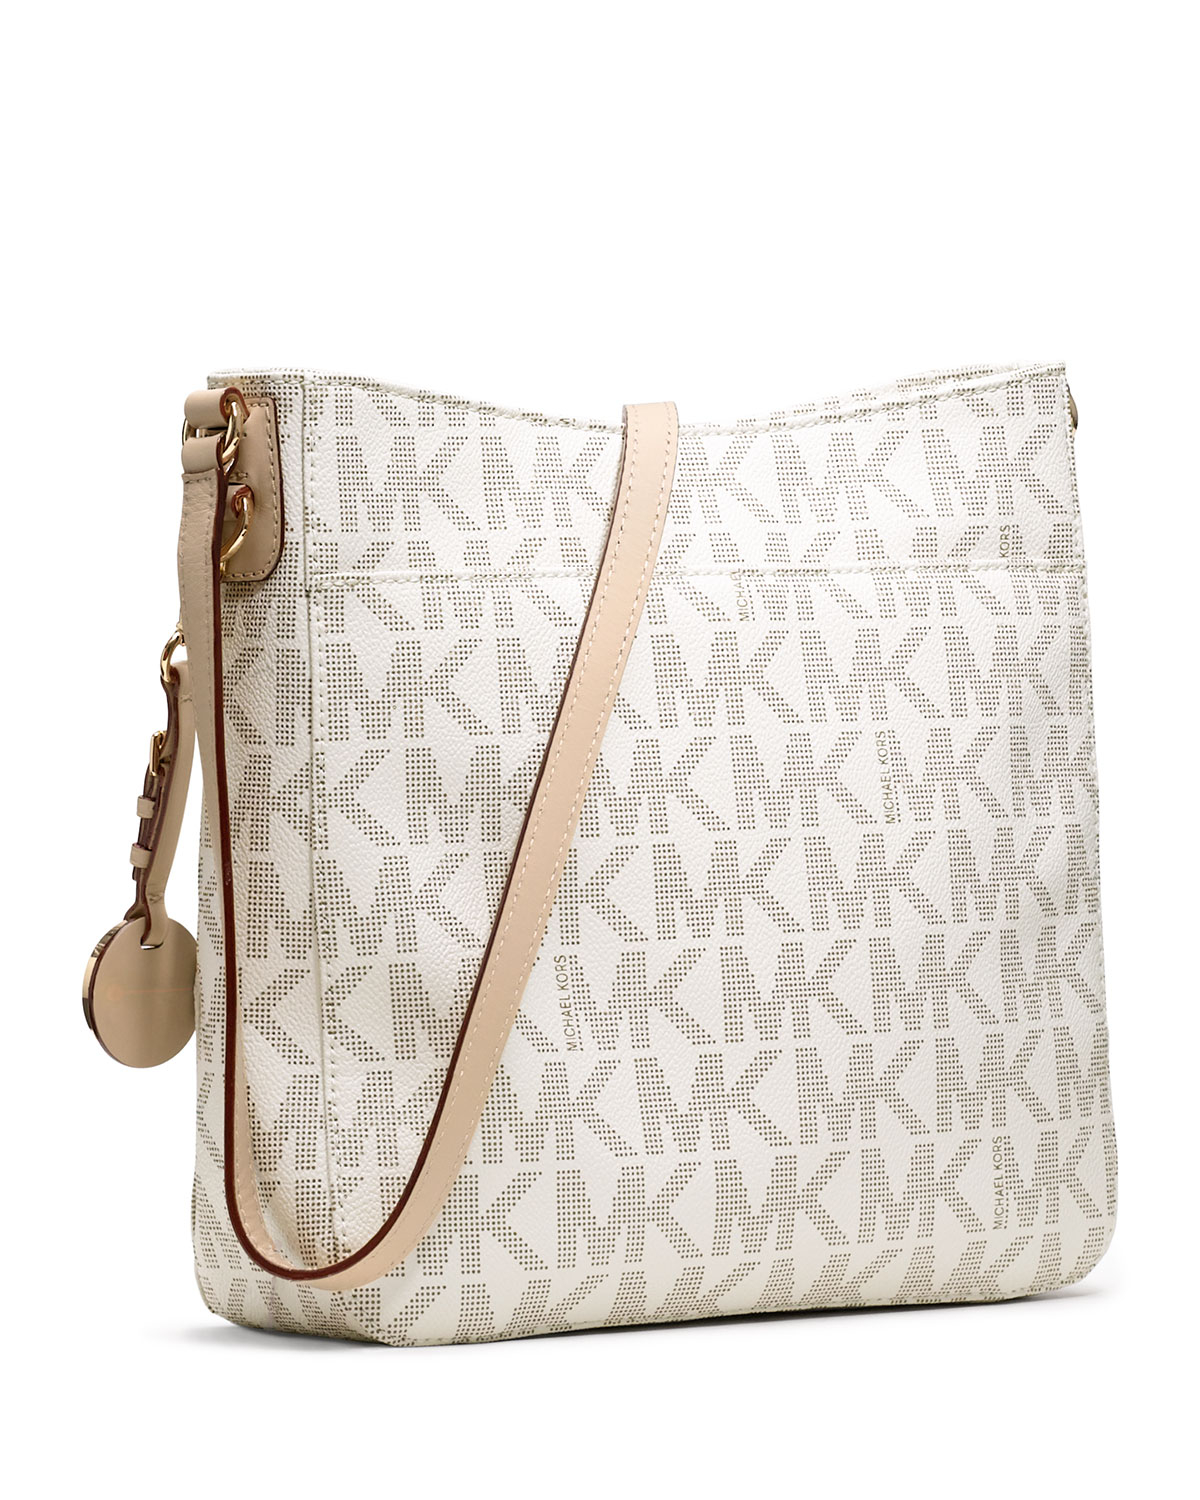 237b2fbfaaa6 Lyst - MICHAEL Michael Kors Jet Set Large Travel Messenger Bag in ...